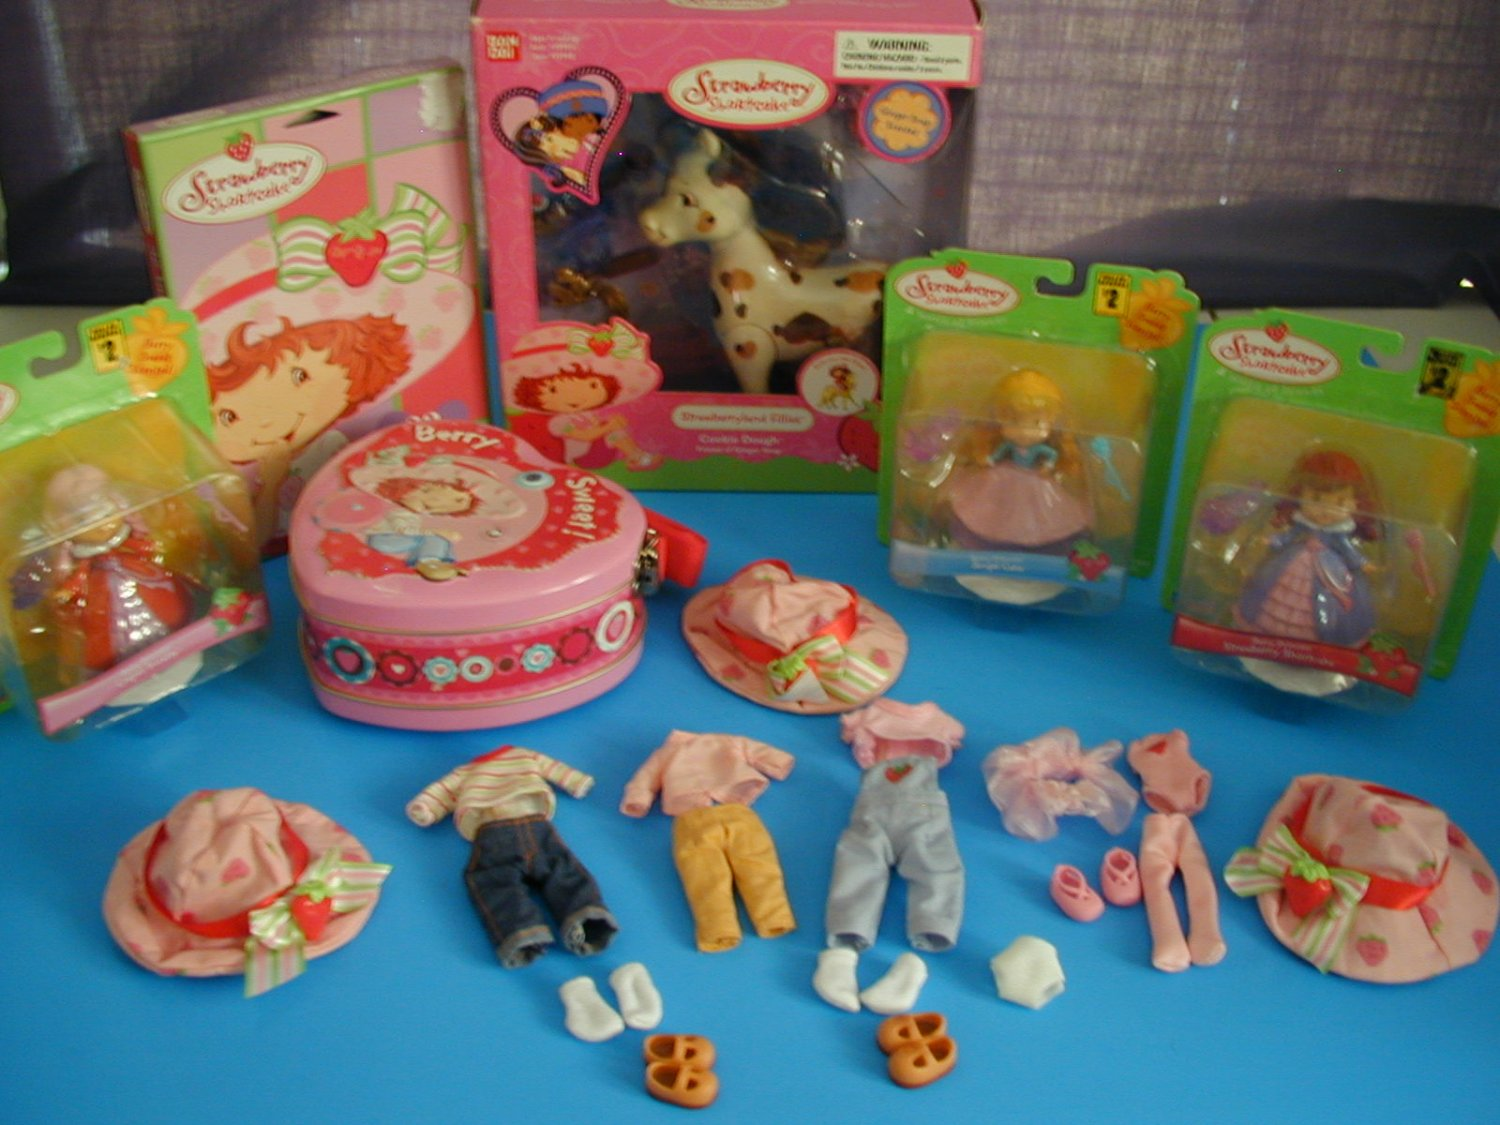 Strawberry Shortcake Ban-Dai Lot~ Cookie Dough Filly~ Berry Princess~Clothes